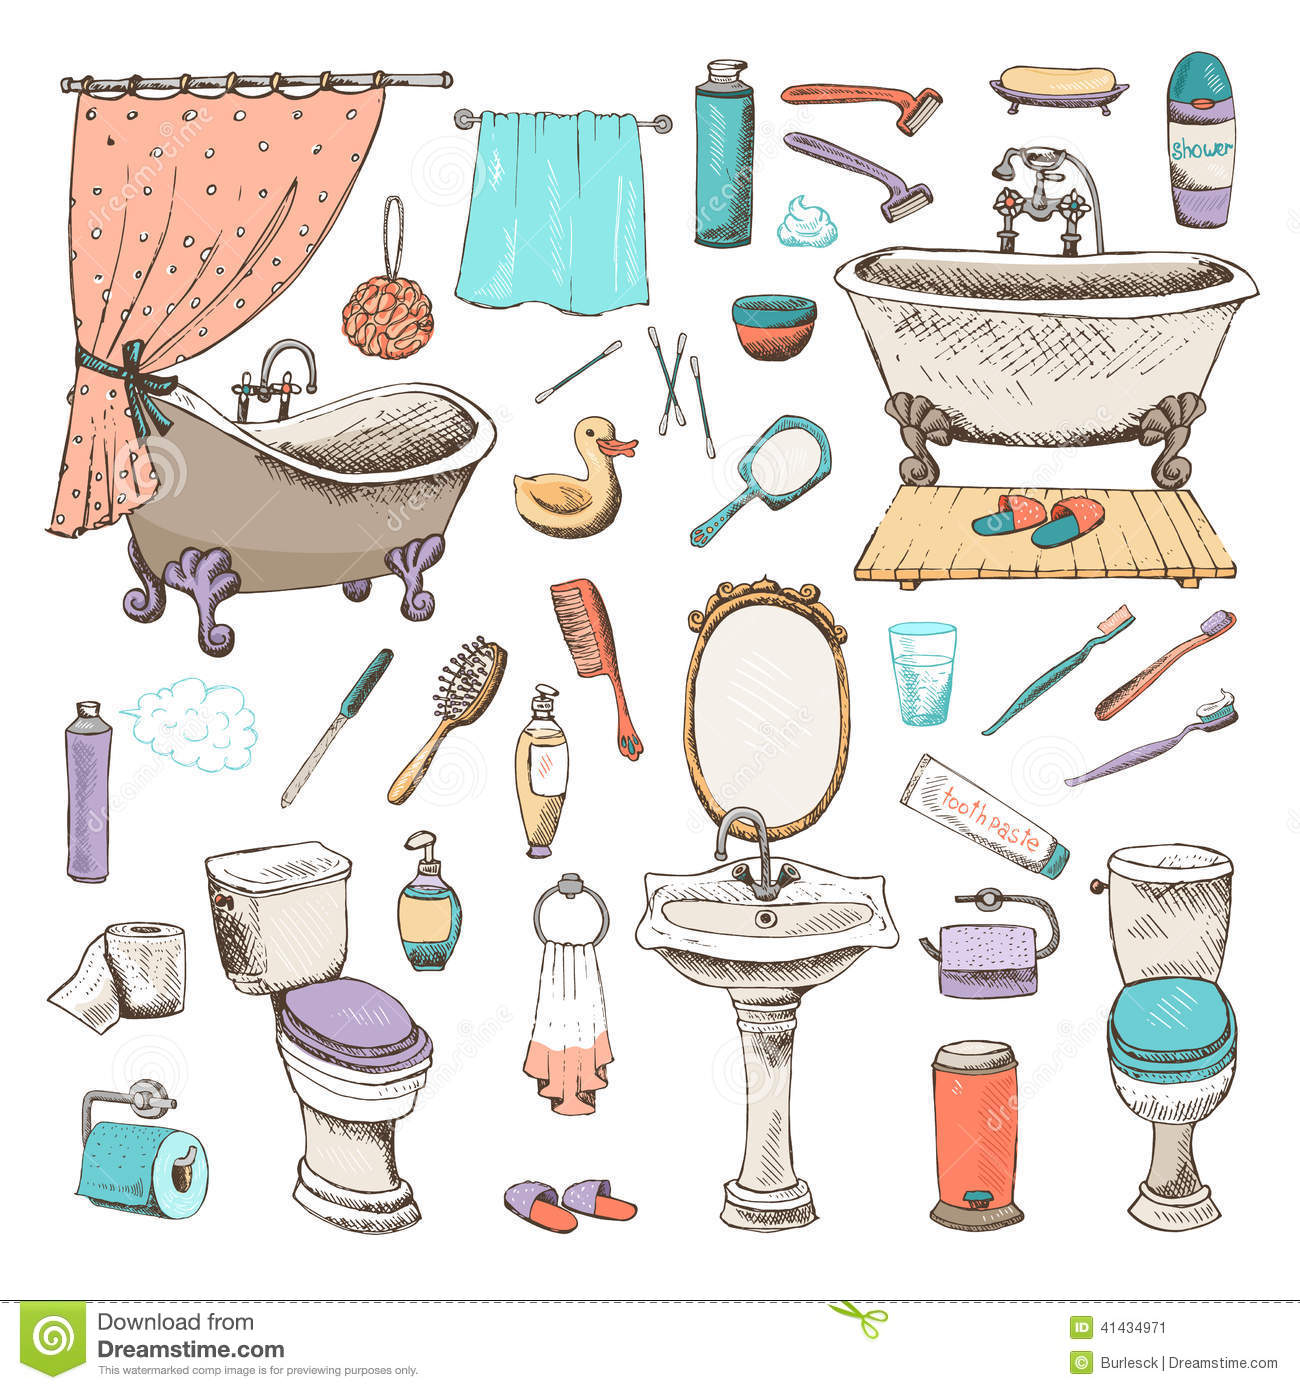 Hygene items clipart clipart suggest for Bathroom goods